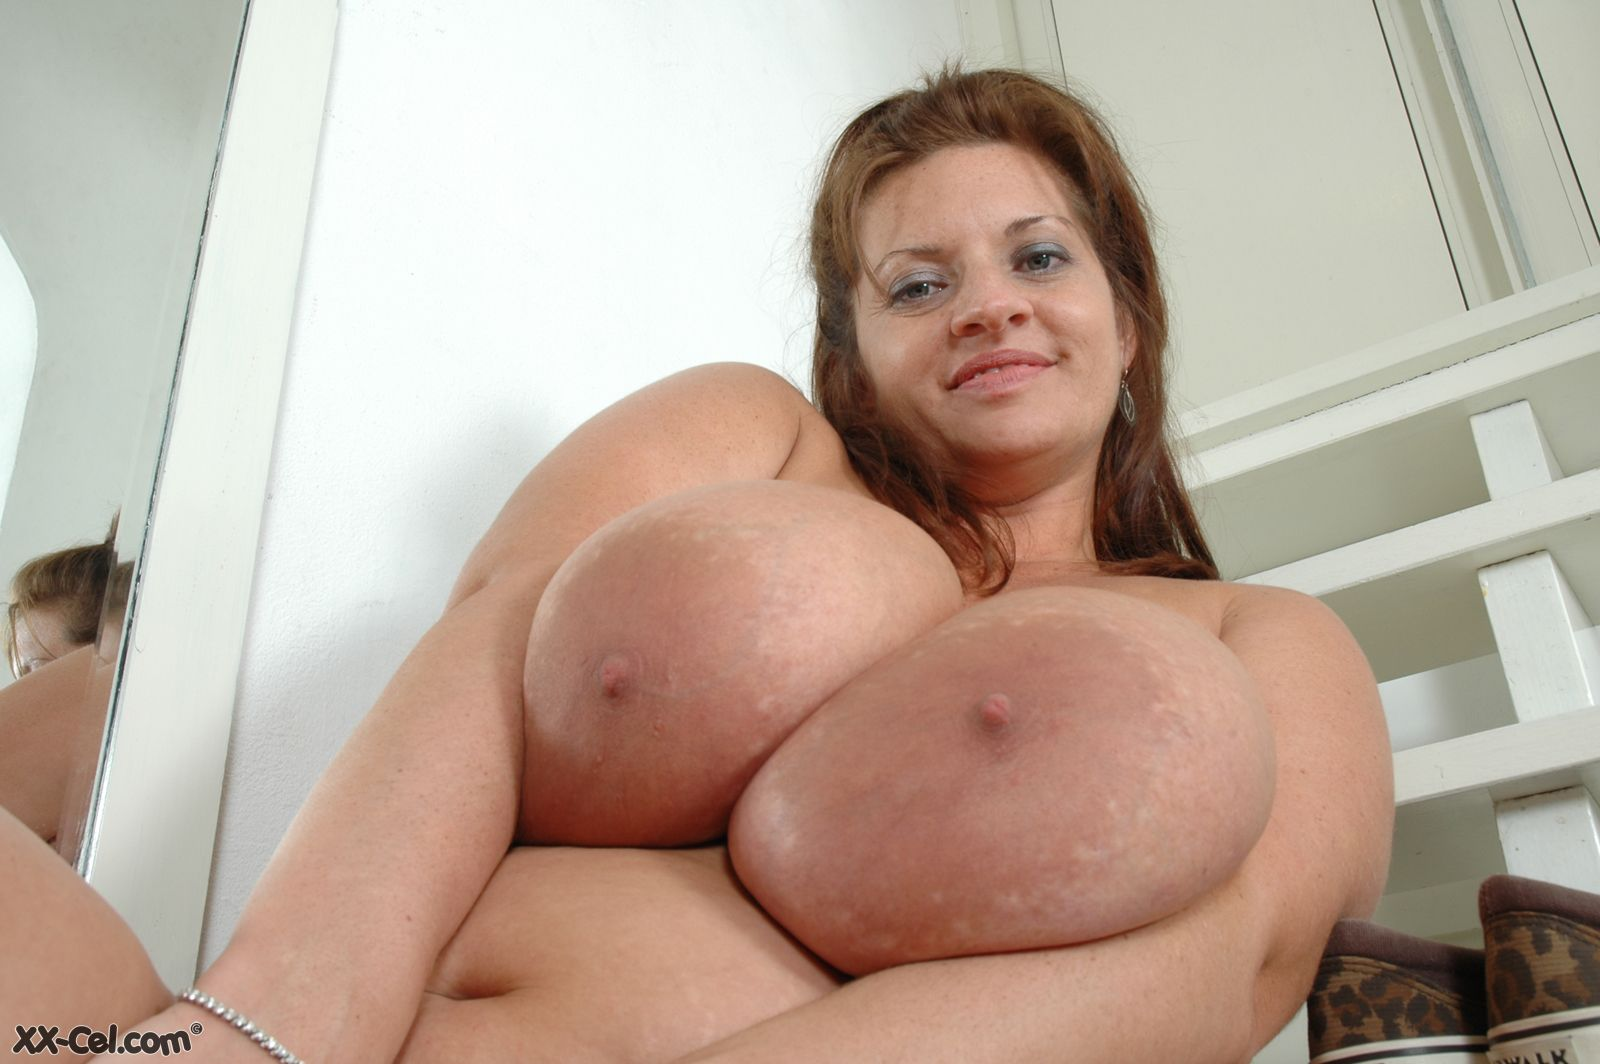 Maria Moore Huge Jugged on Sexy BBW XXcel 04 Maria Moore Huge Jugged on Sexy BBW at XXcel.com